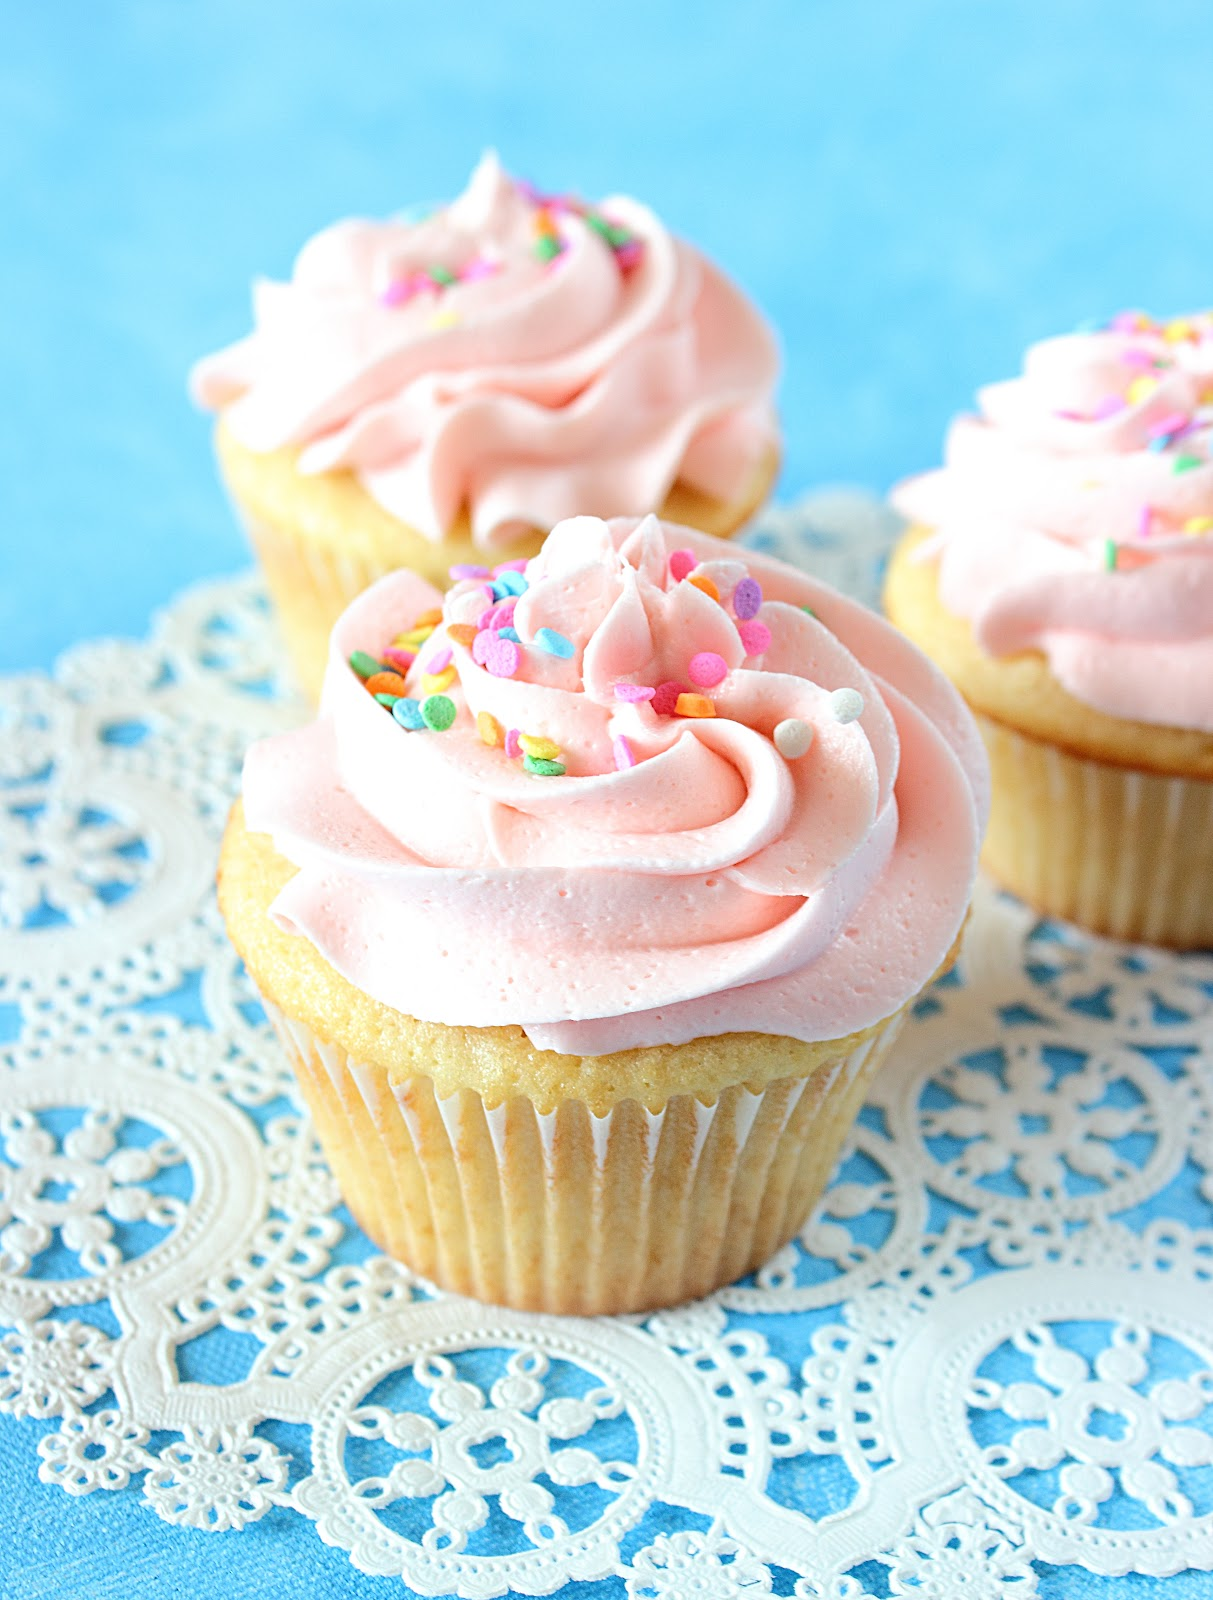 Converting Cake Recipe To Cupcakes